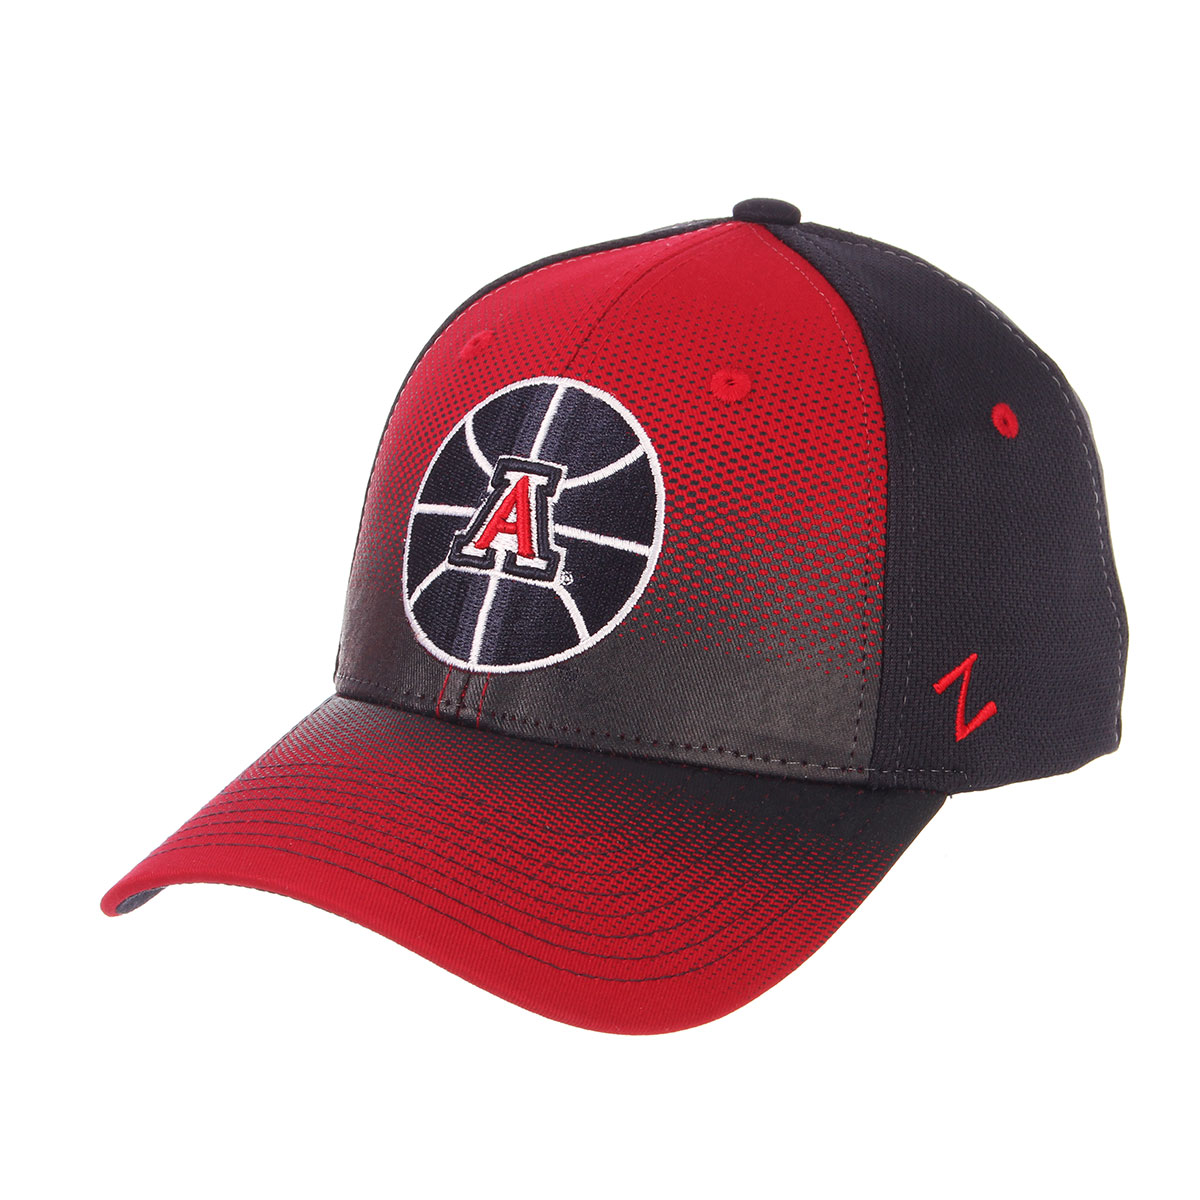 HAT OF THE MONTH: Zephyr Arizona Basketball Stretch Fit Cap